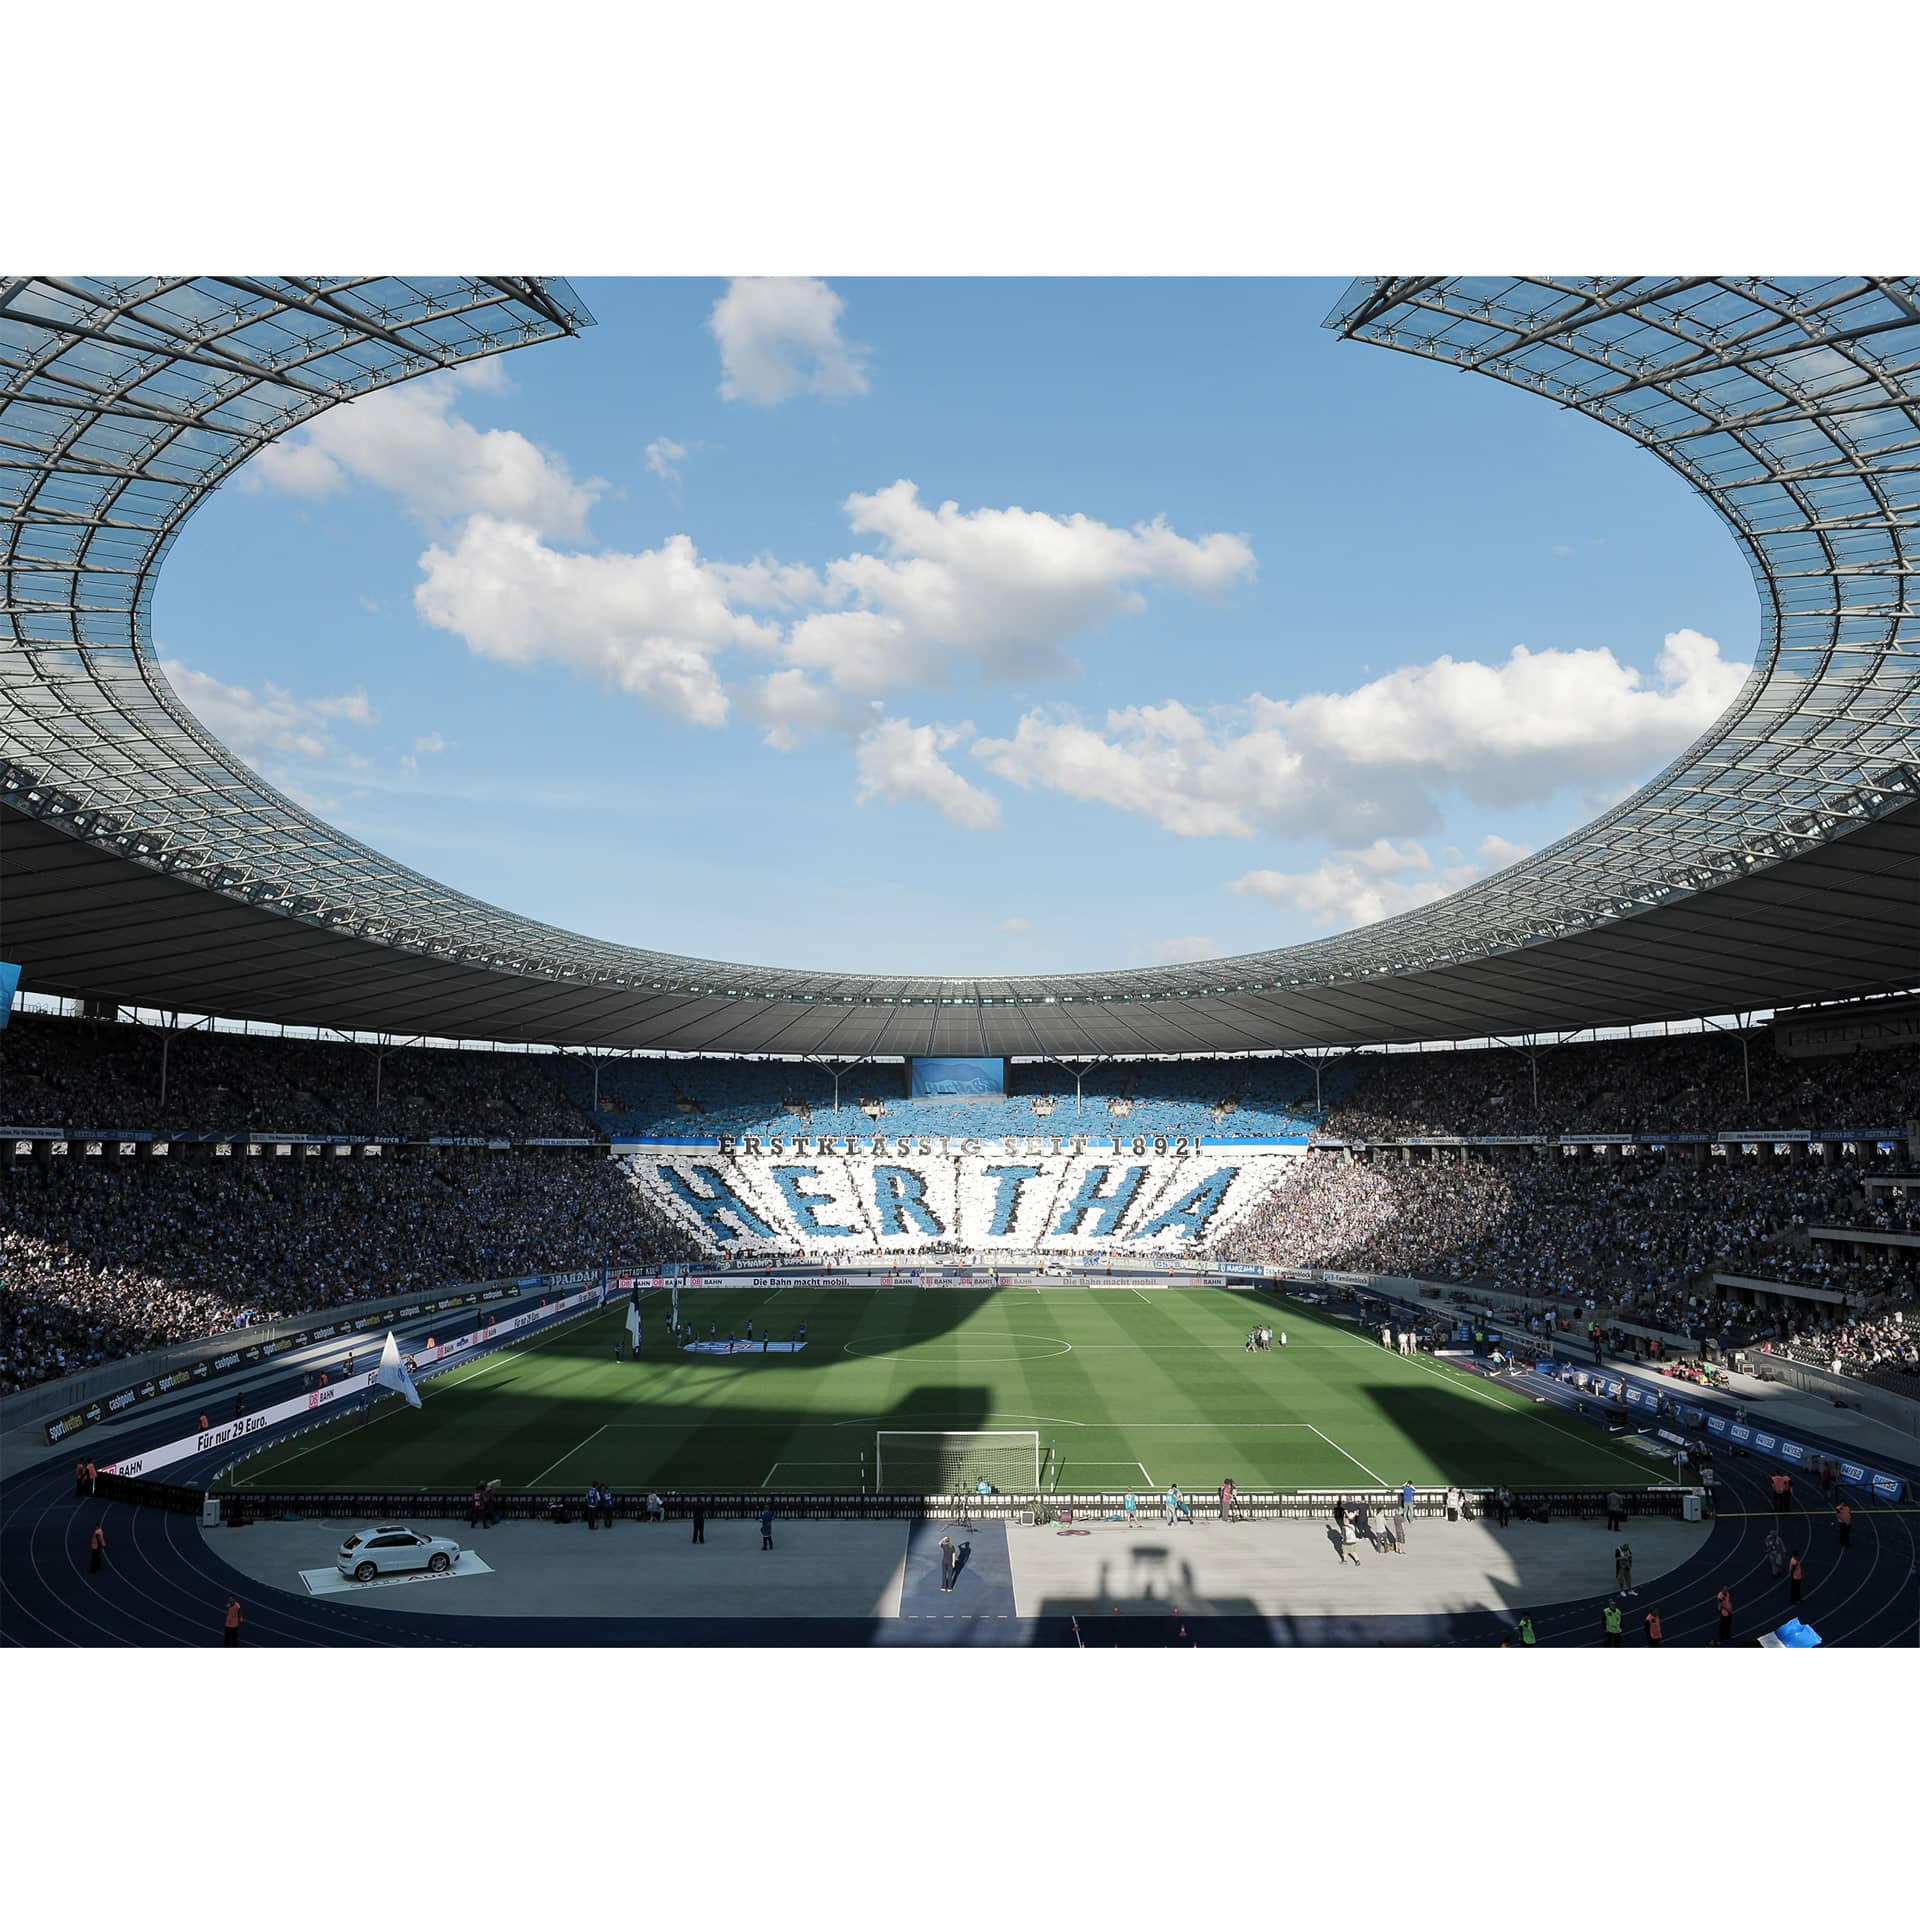 fototapete hertha bsc stadion am tag wall. Black Bedroom Furniture Sets. Home Design Ideas